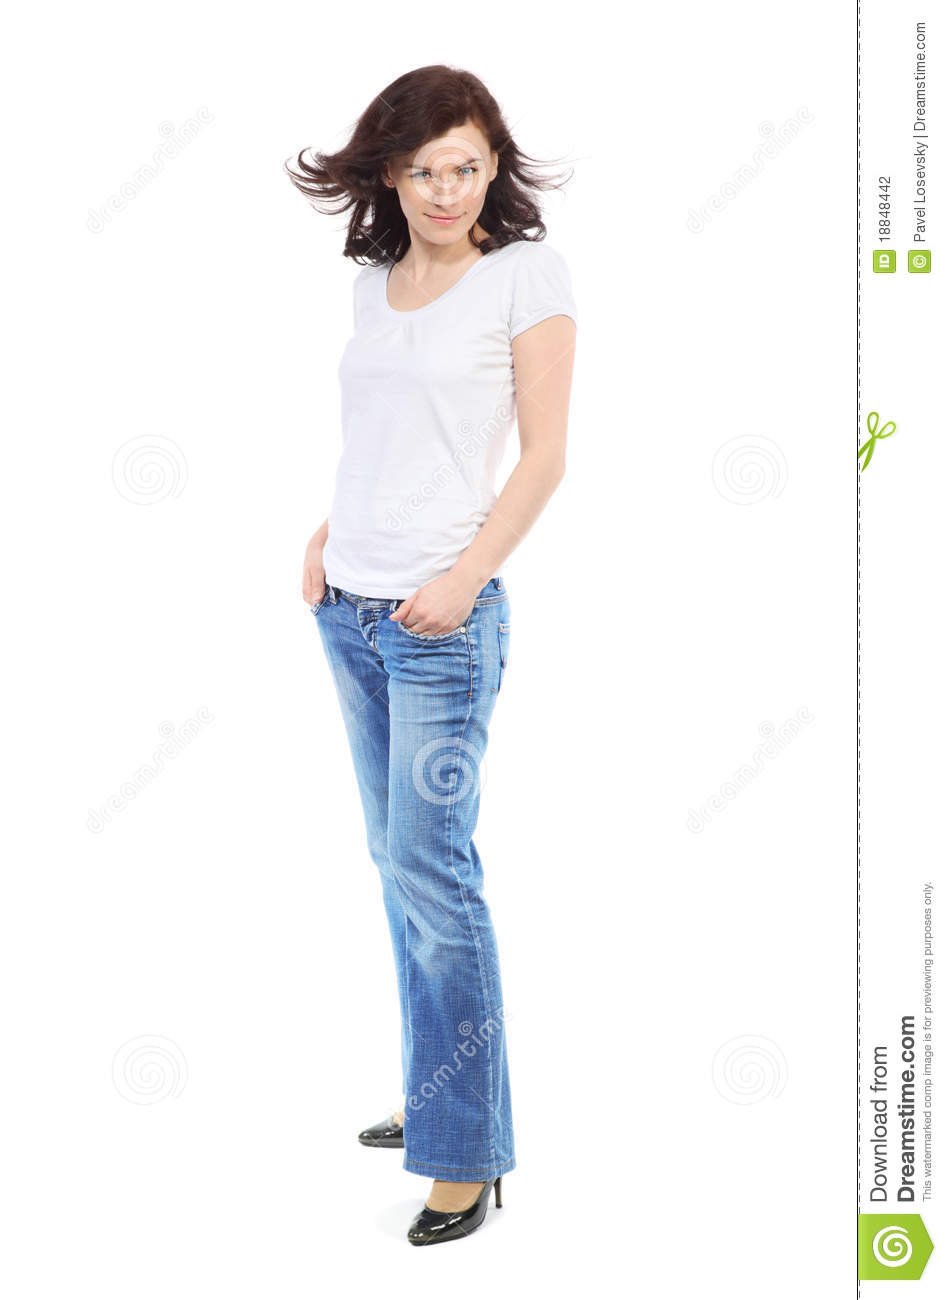 Full-length portrait of beautiful girl in jeans